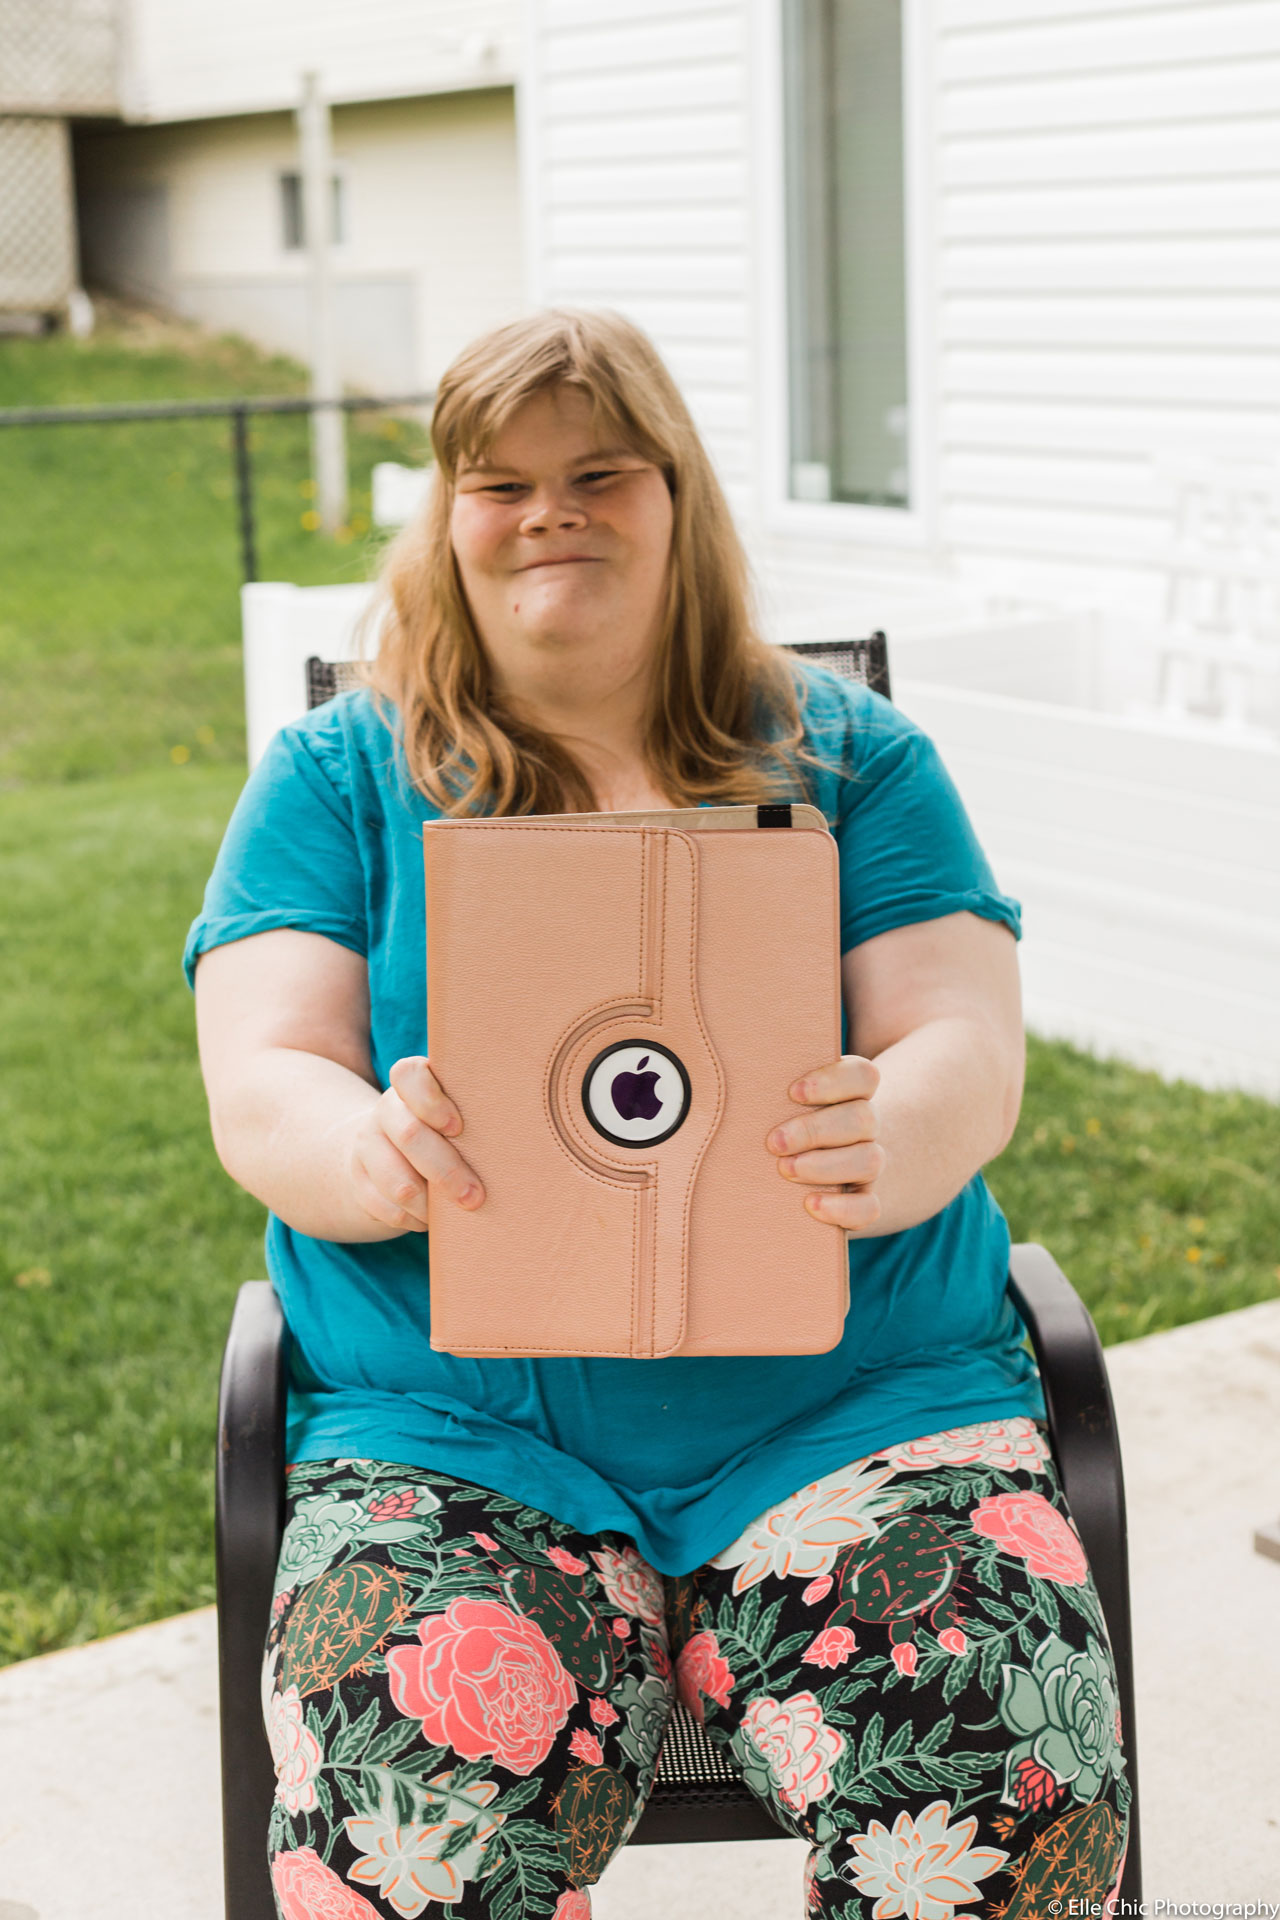 we've got this, photo series, one year later, covid-19, community living guelph wellington, elle chic photography, guelph ontario, disability, frontline heroes, megan, cat lover, animals